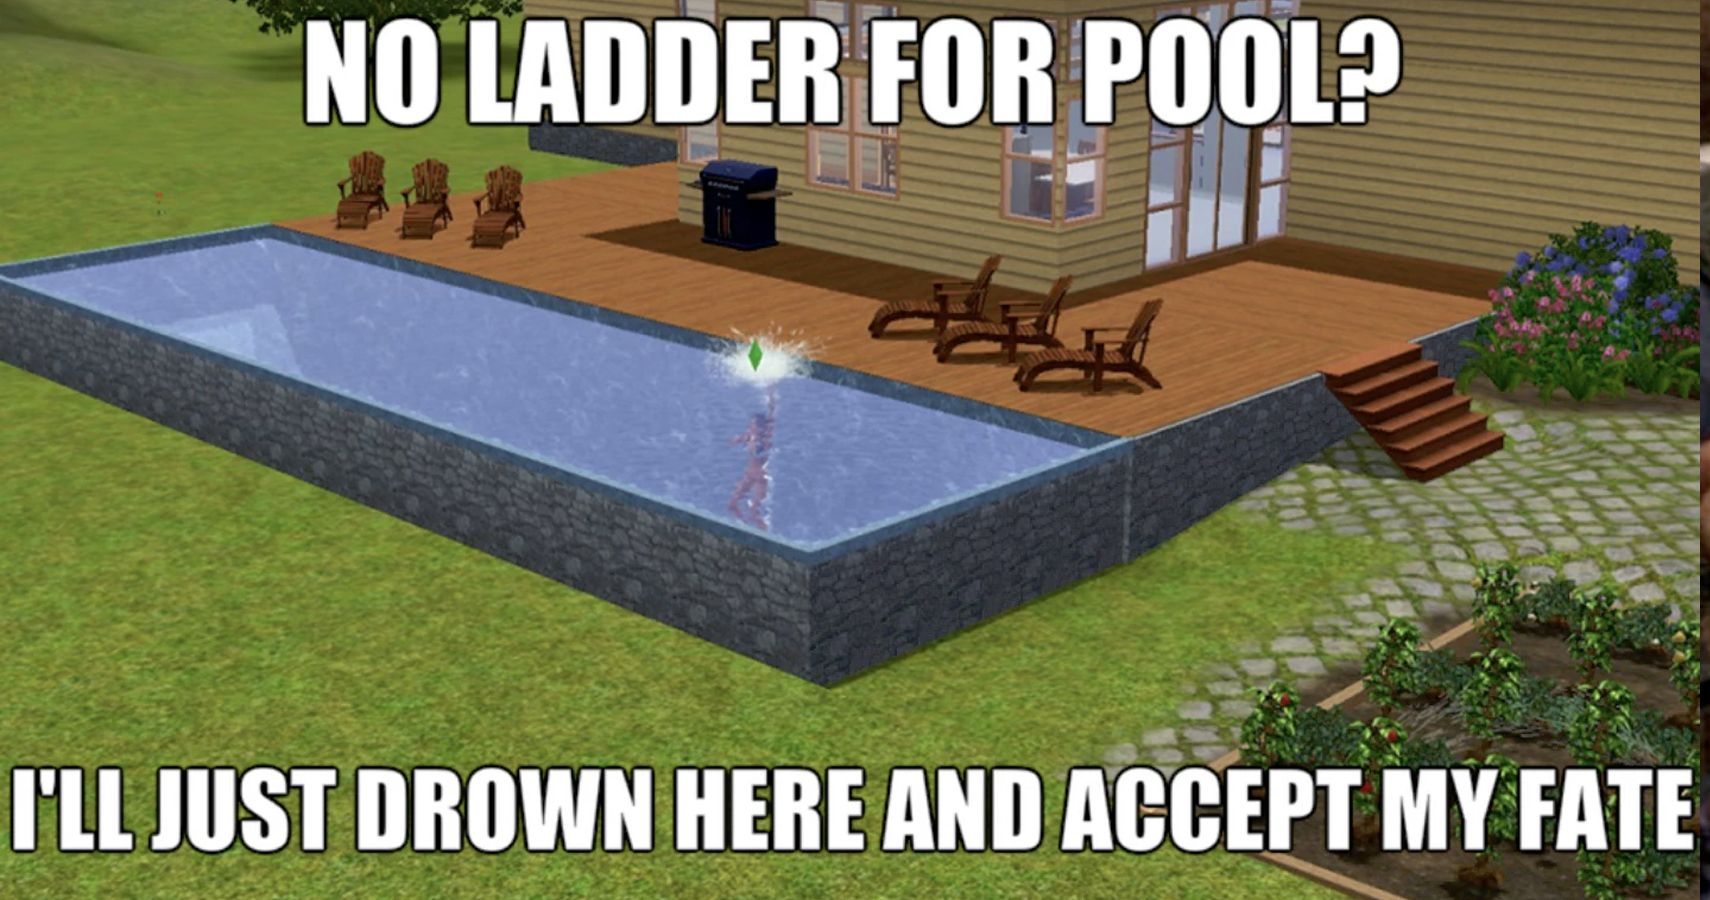 sims meme original the sims memes that are too hilarious for words thegamer